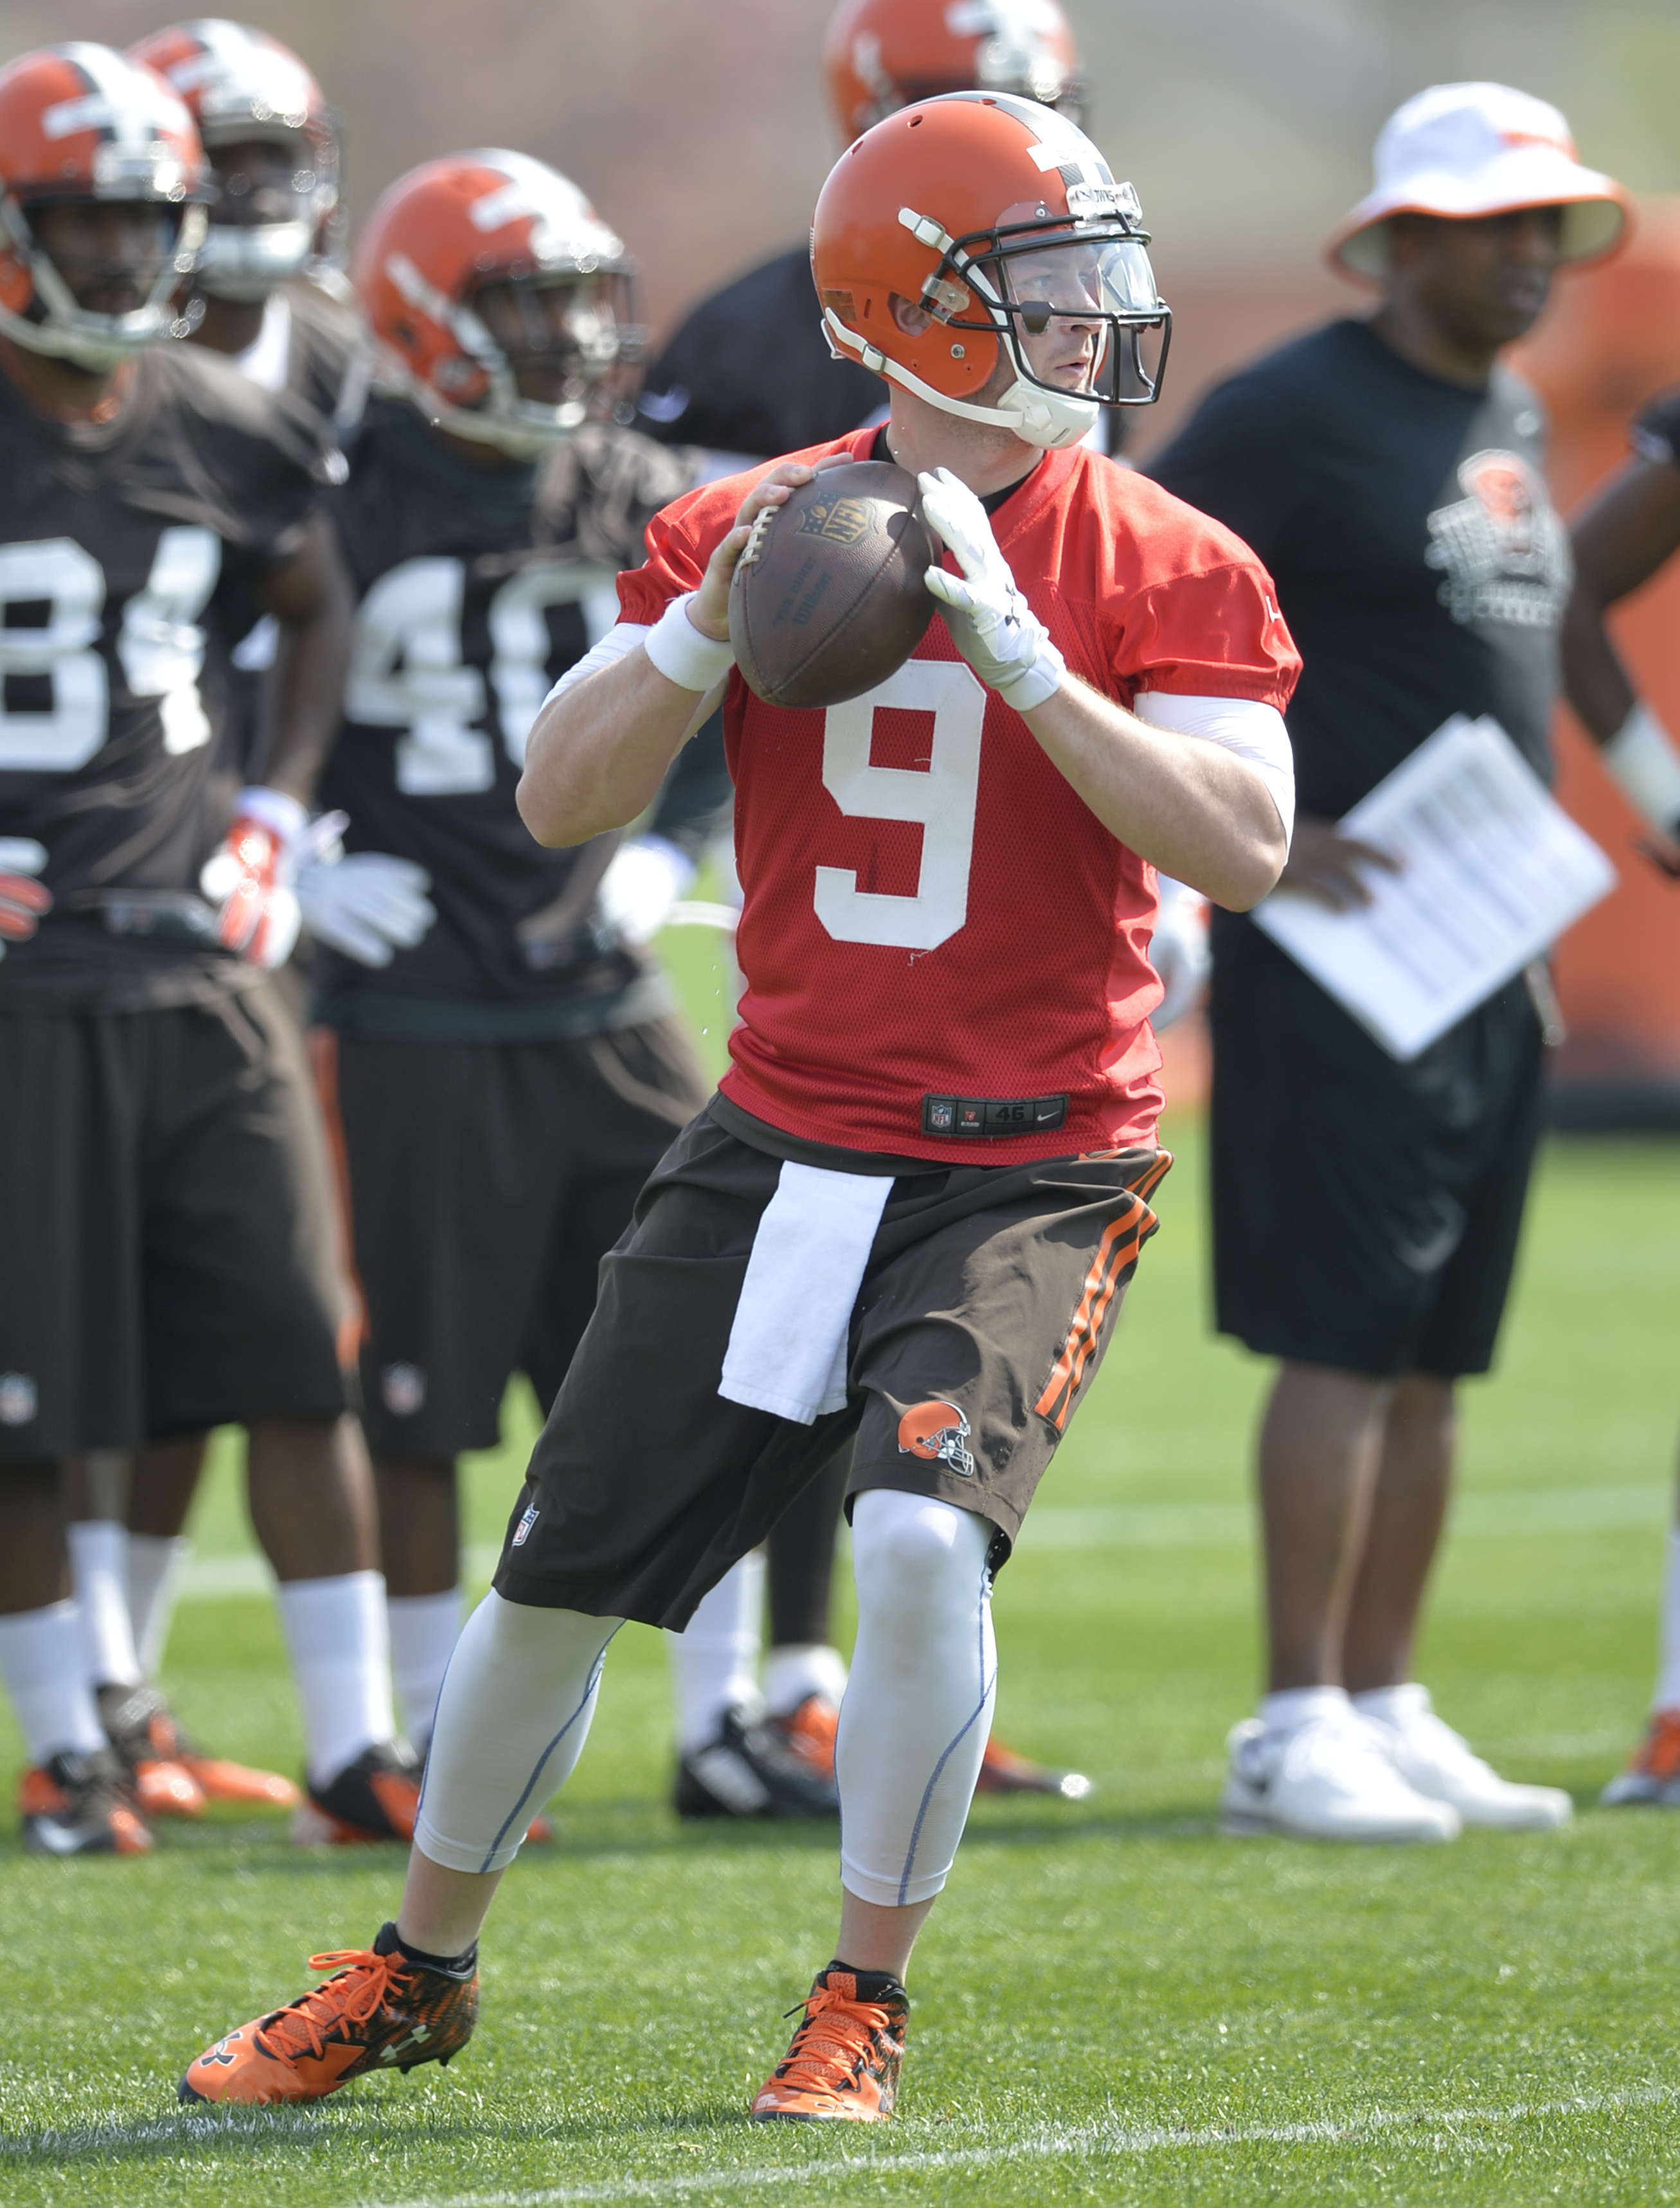 Cleveland Browns quarterback Connor Shaw (9) drops back to pass during practice at NFL football minicamp in Berea, Ohio, Friday, May 8, 2015. (AP Photo/David Richard)